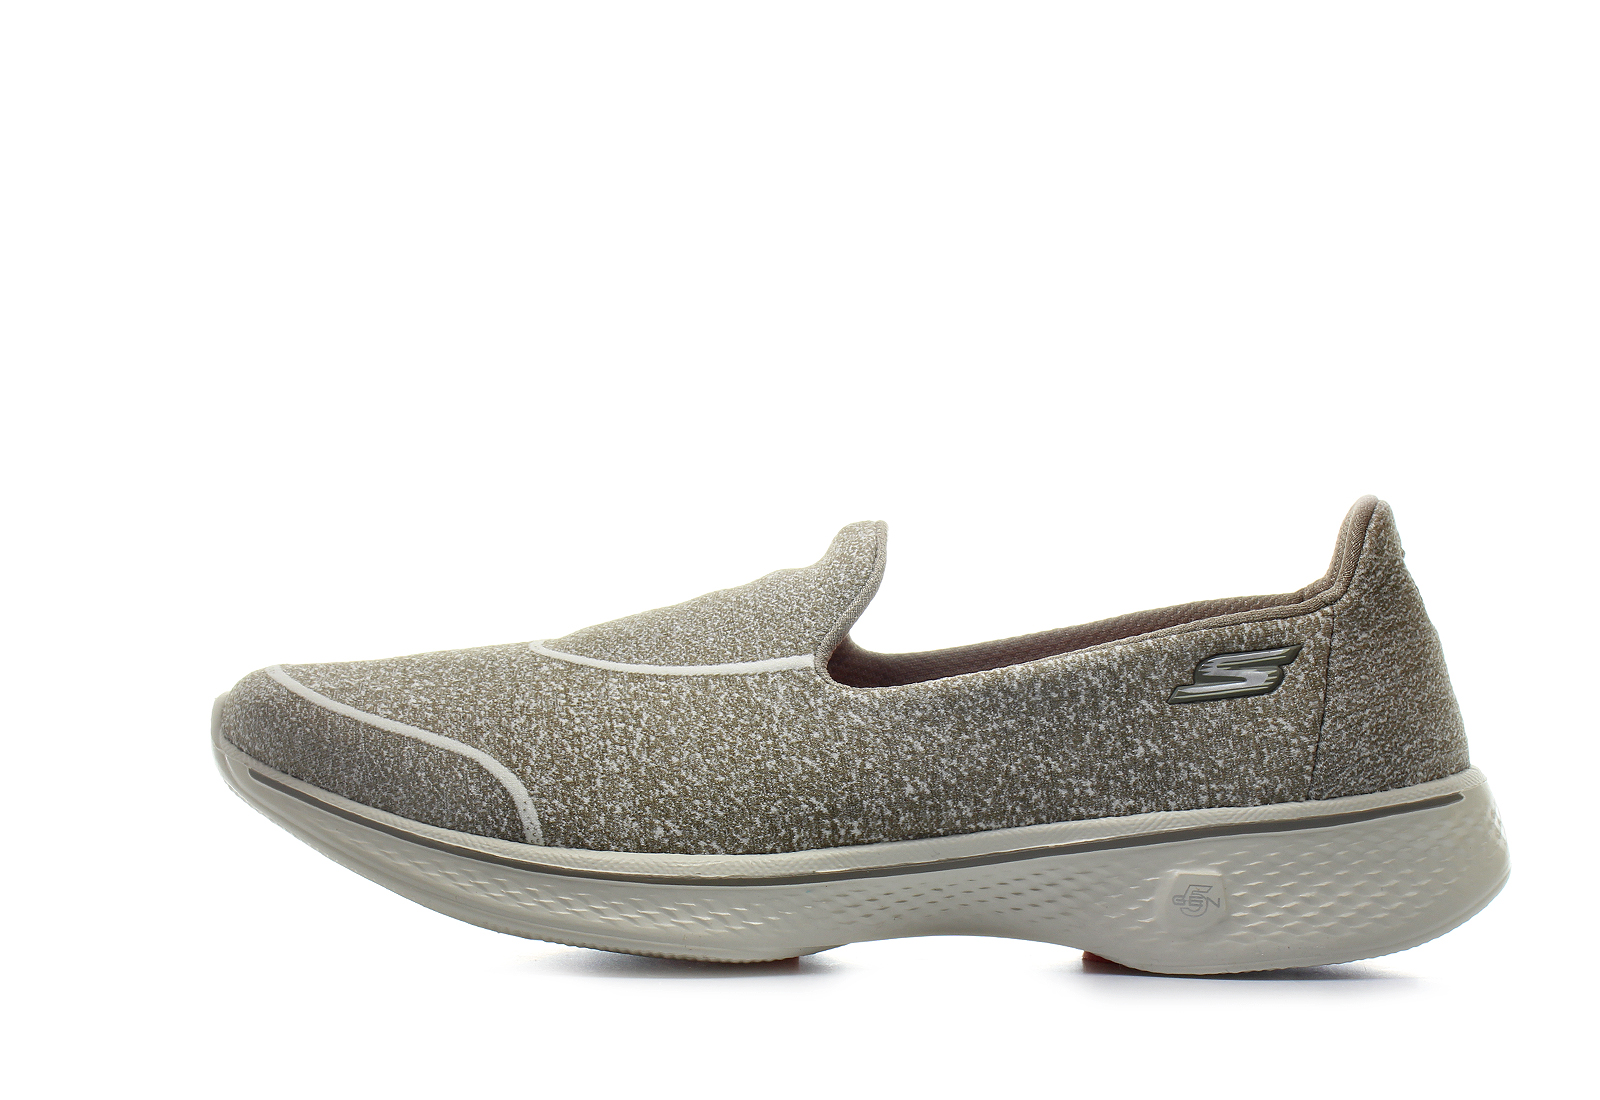 Skechers Shoes Super Sock 4 14161 tpe Online shop for sneakers, shoes and boots